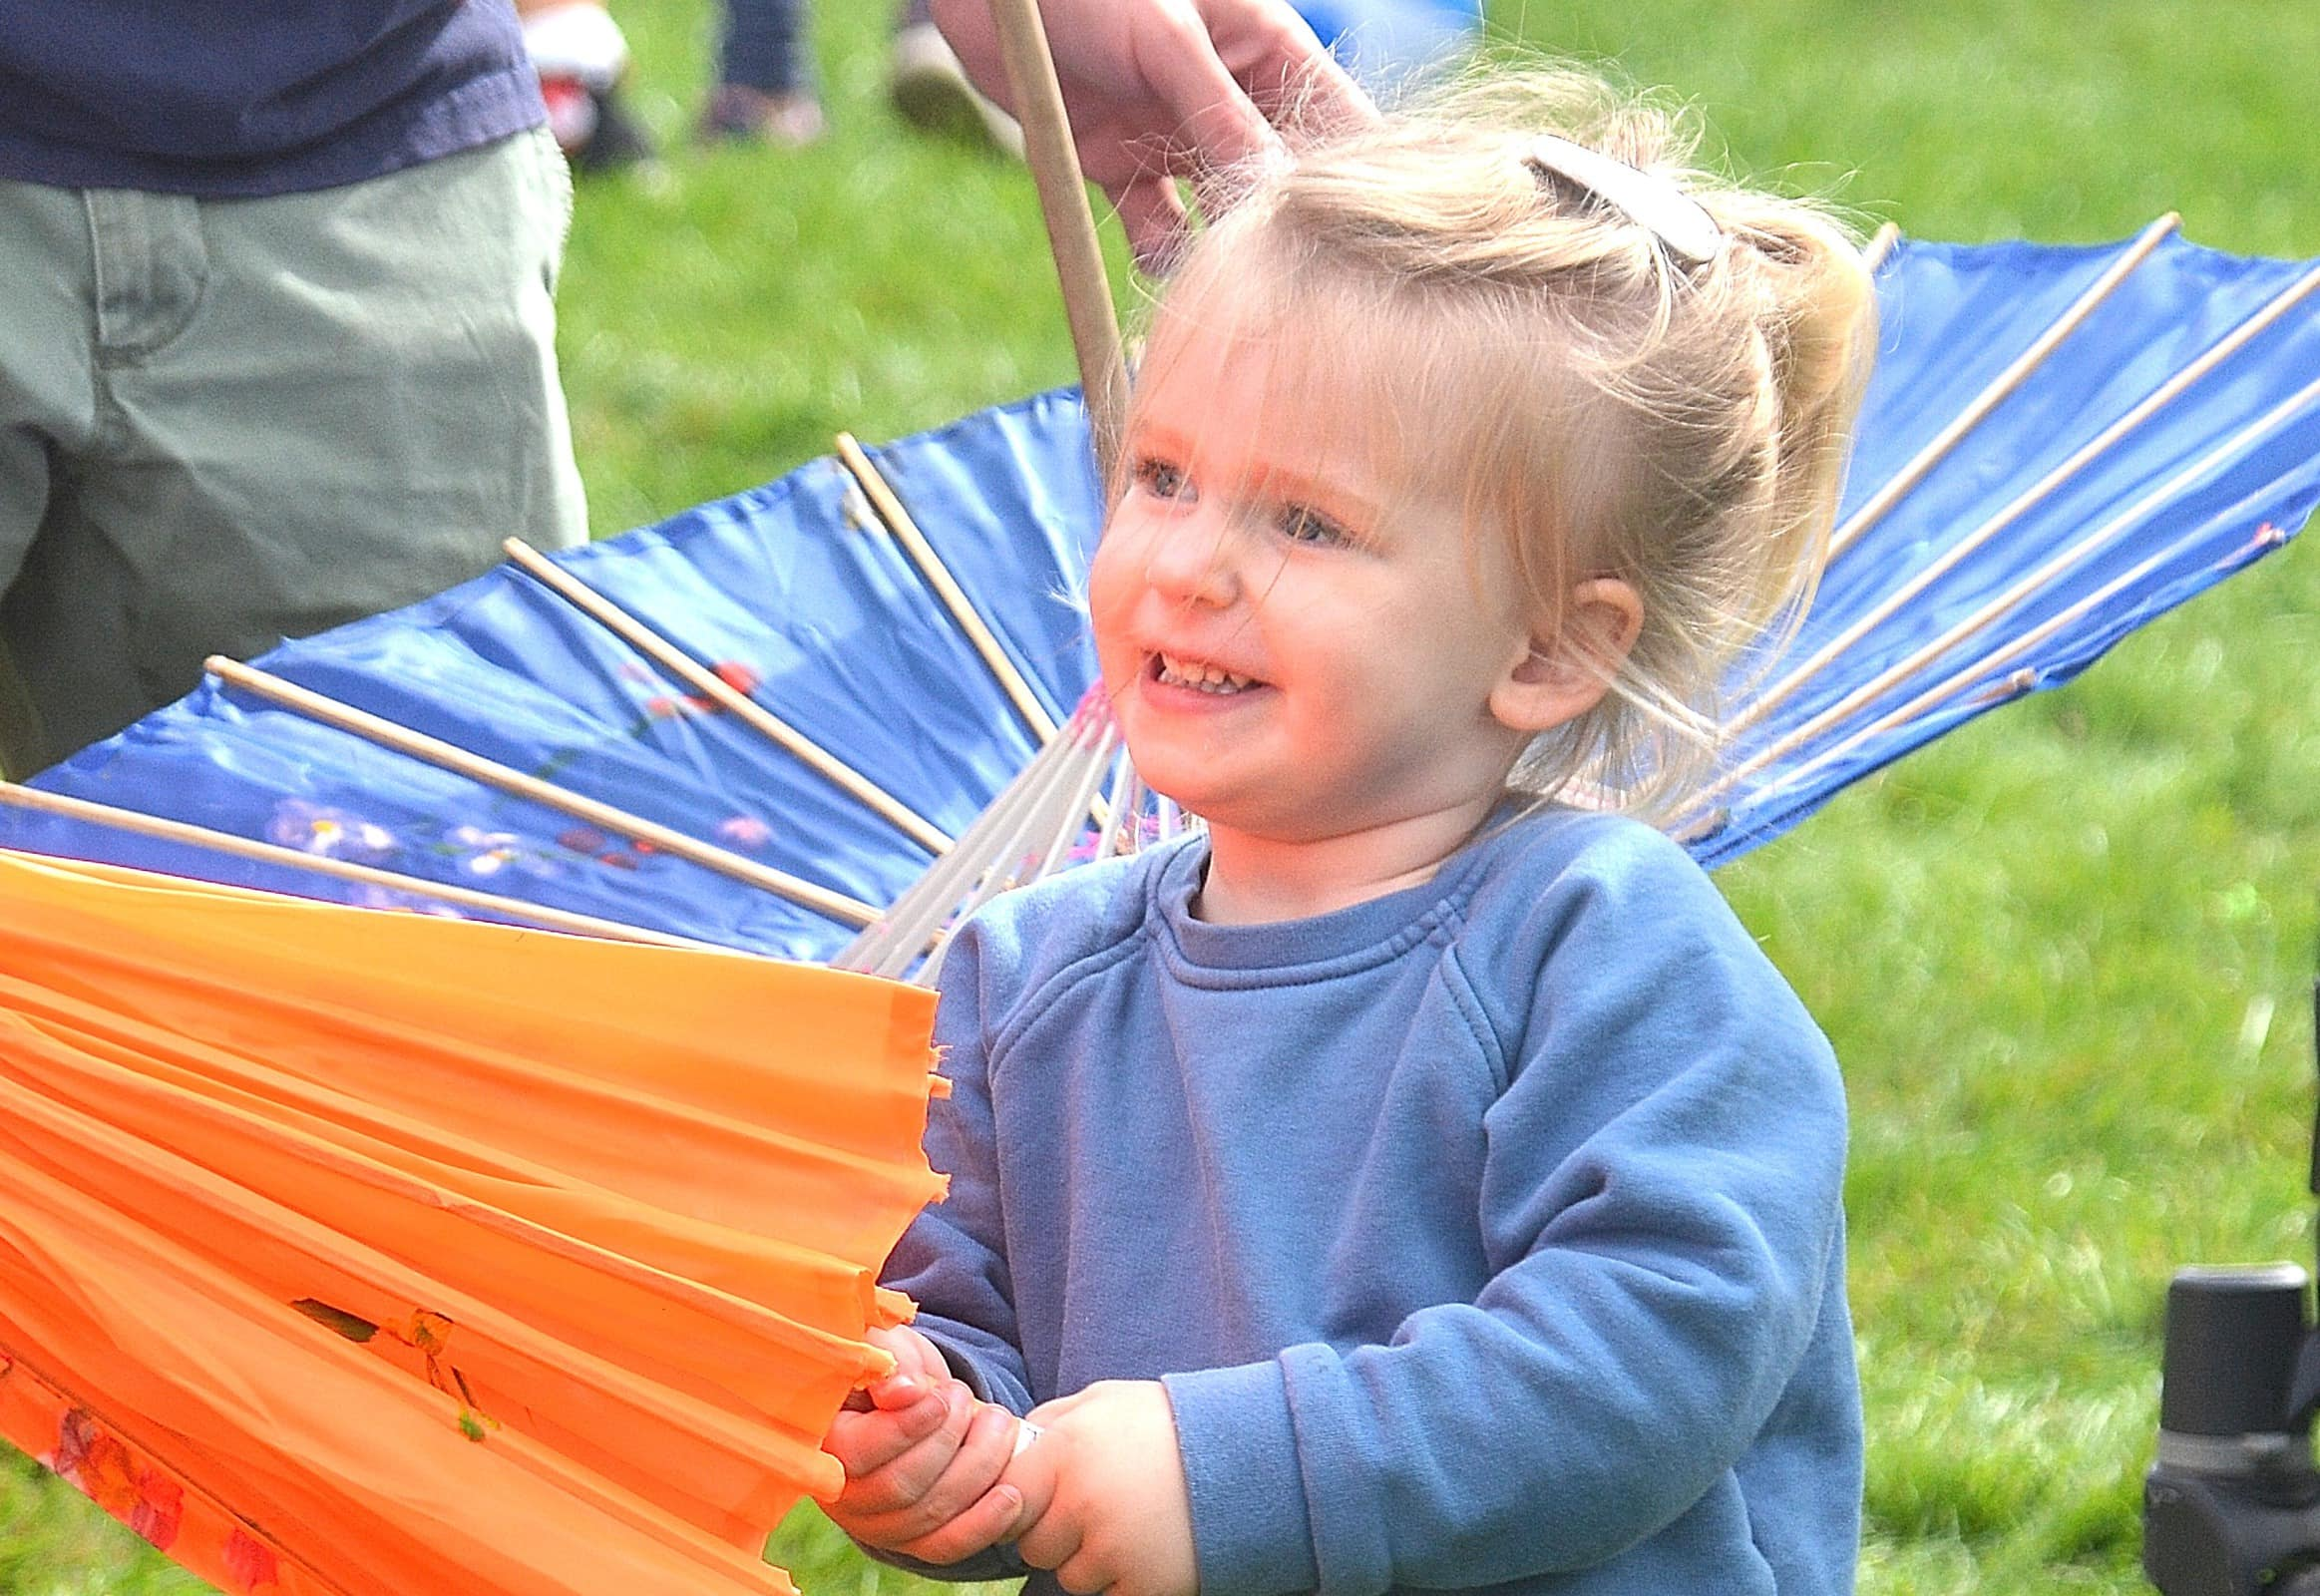 Gray Moore, 2, shops for a souvenir umbrella during the post-parade celebration at St. Mark's School field.